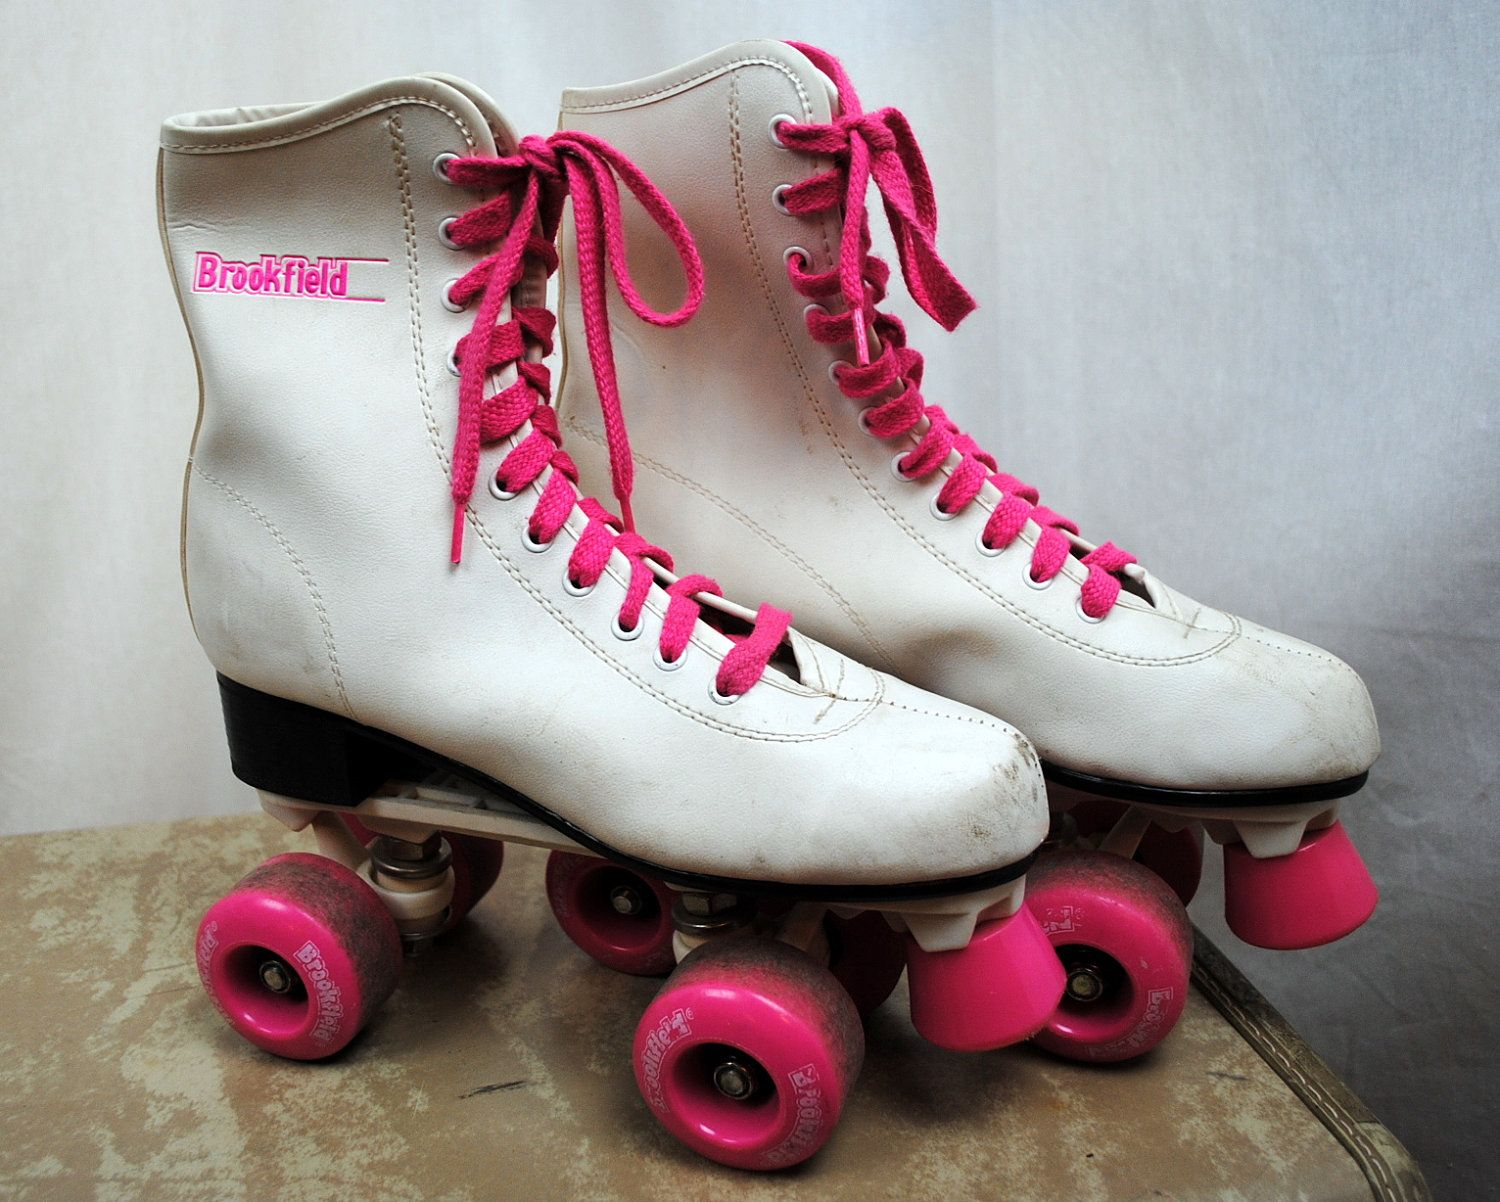 Roller Skates with hot pink wheels! Pretty much lived at the roller rink in the 80s